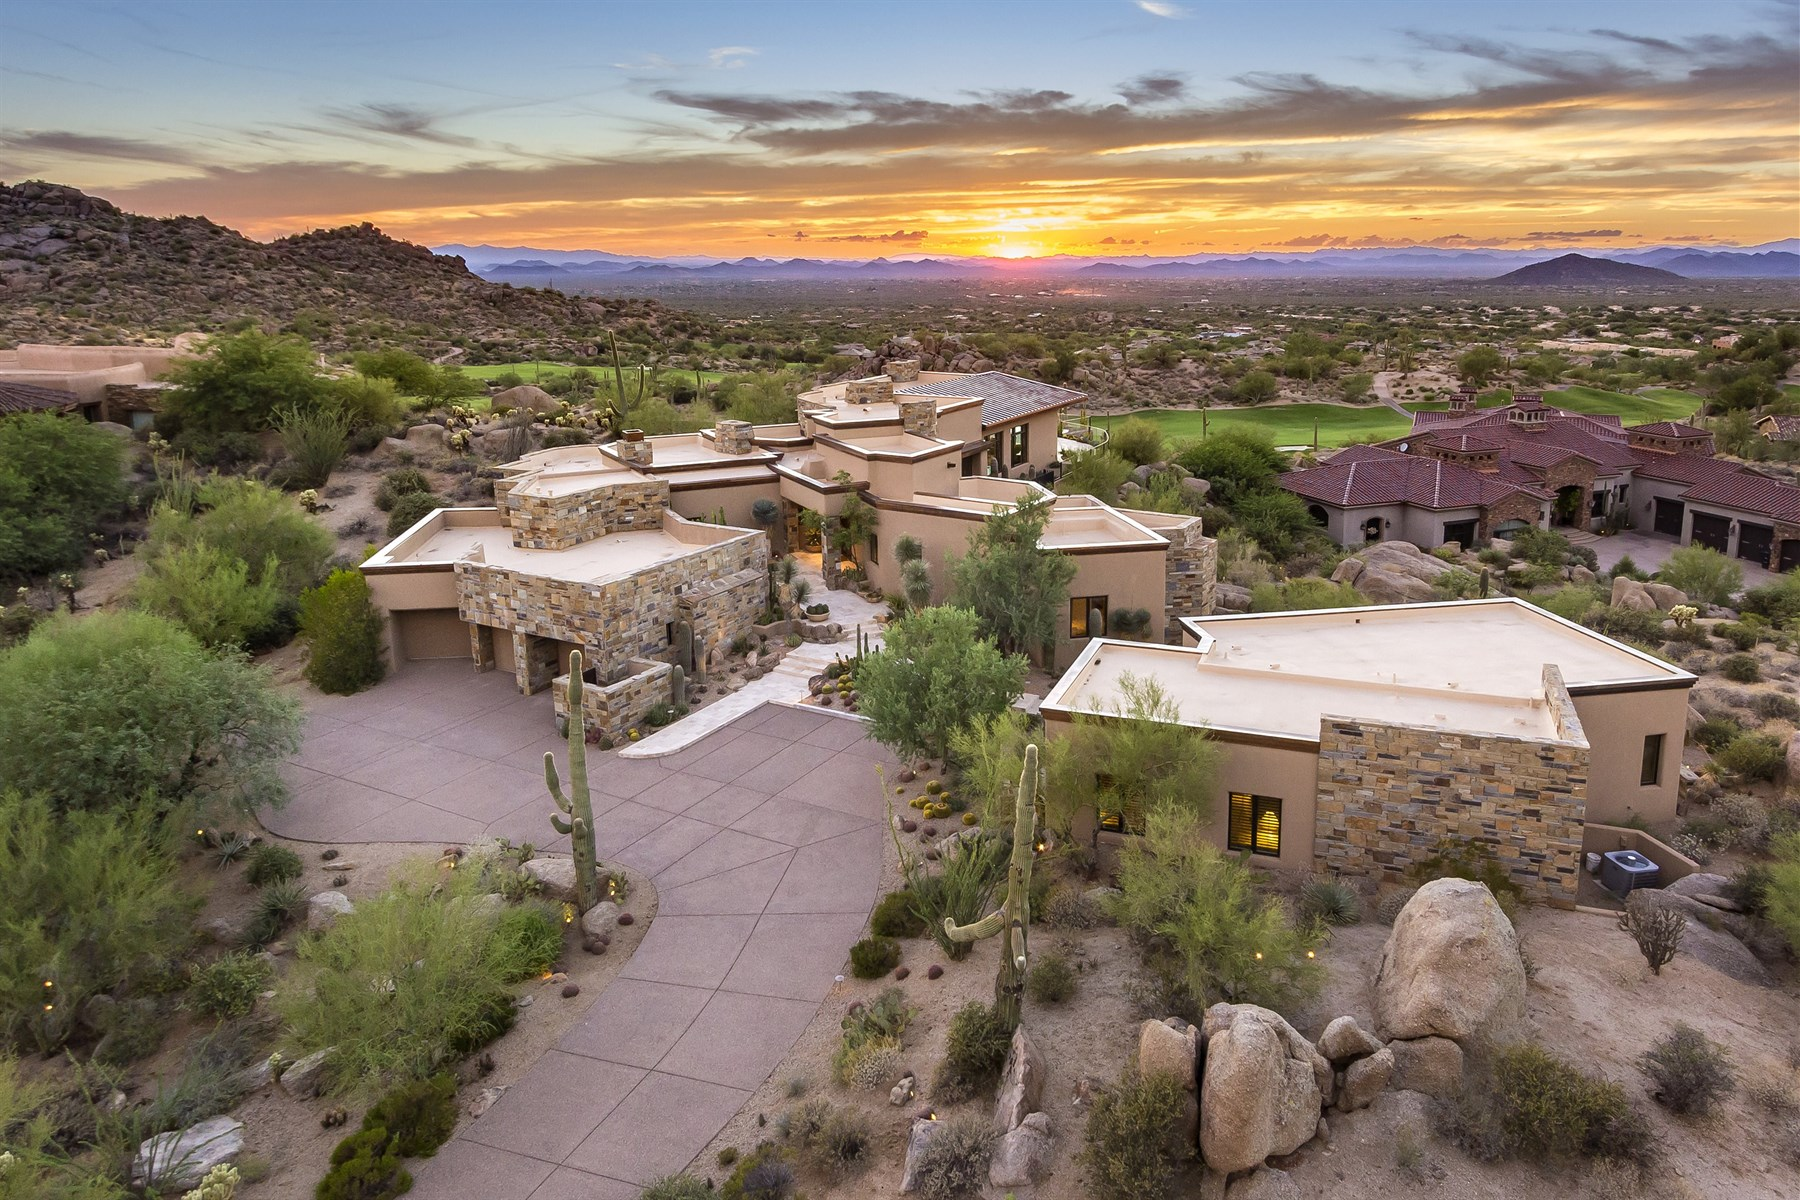 Single Family Home for Sale at One-of-a-kind hillside beauty 27770 N 103rd Pl Scottsdale, Arizona, 85262 United States